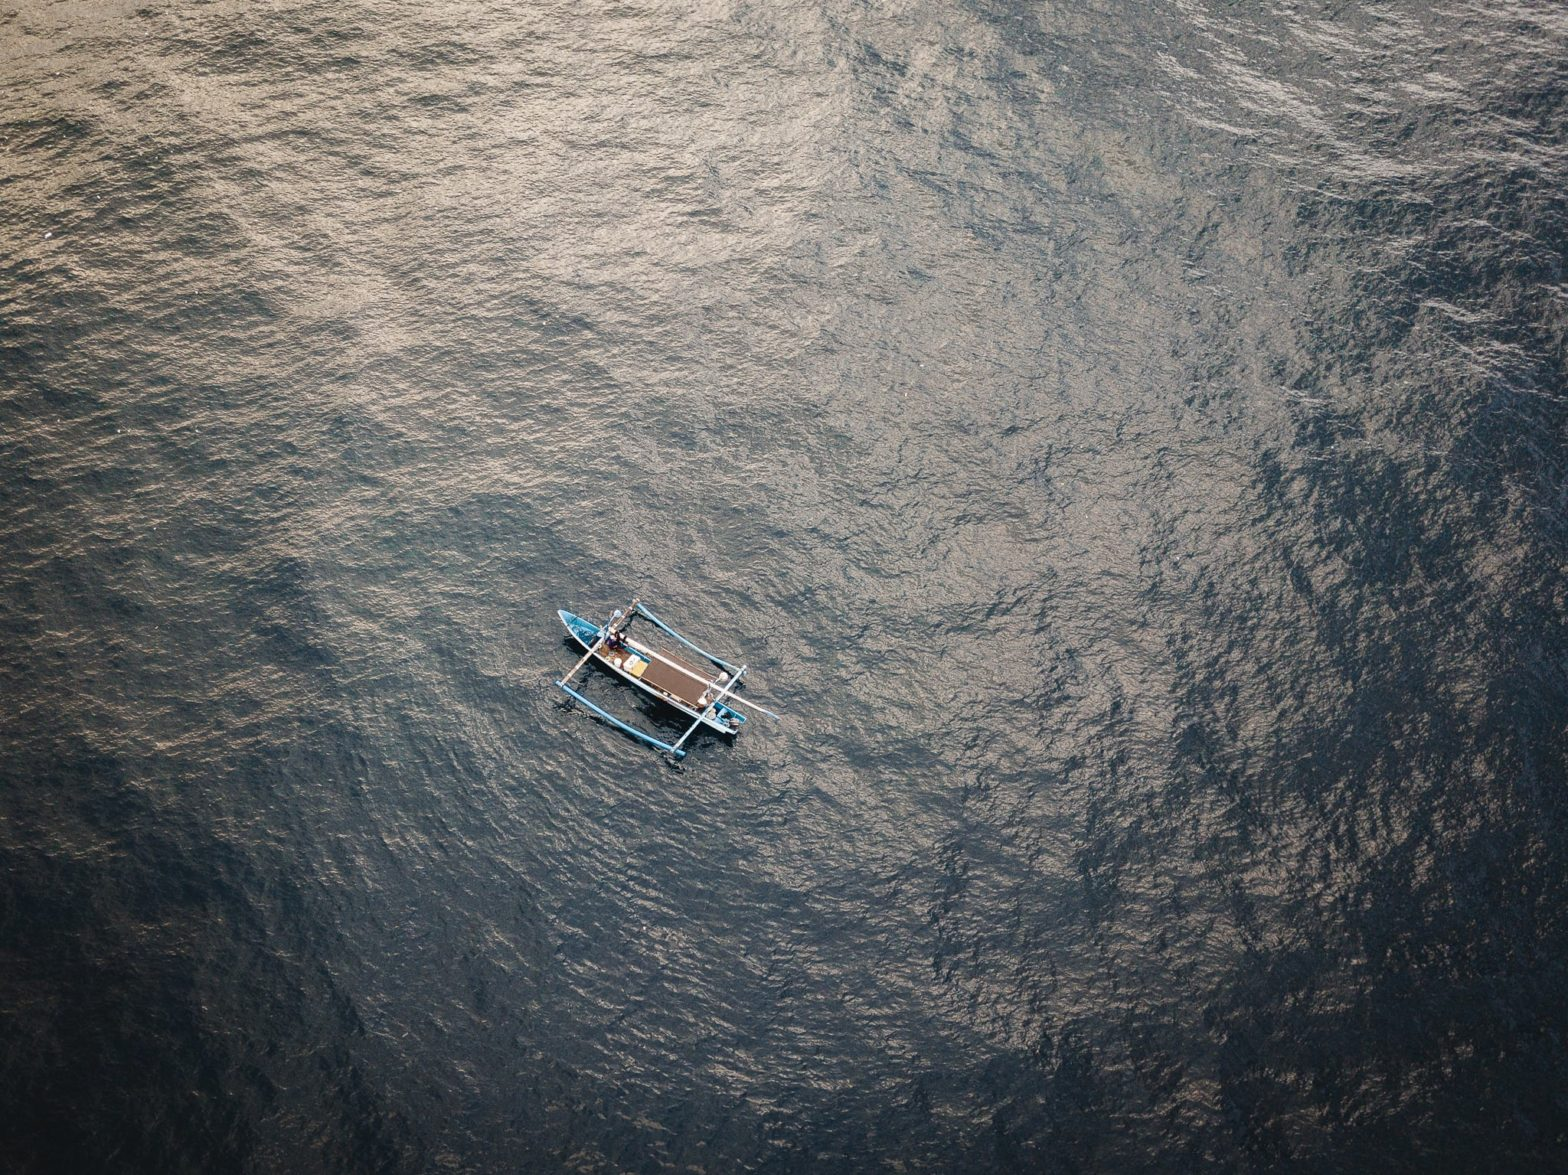 Aerial view of a fishing boat in the ocean early in the morning